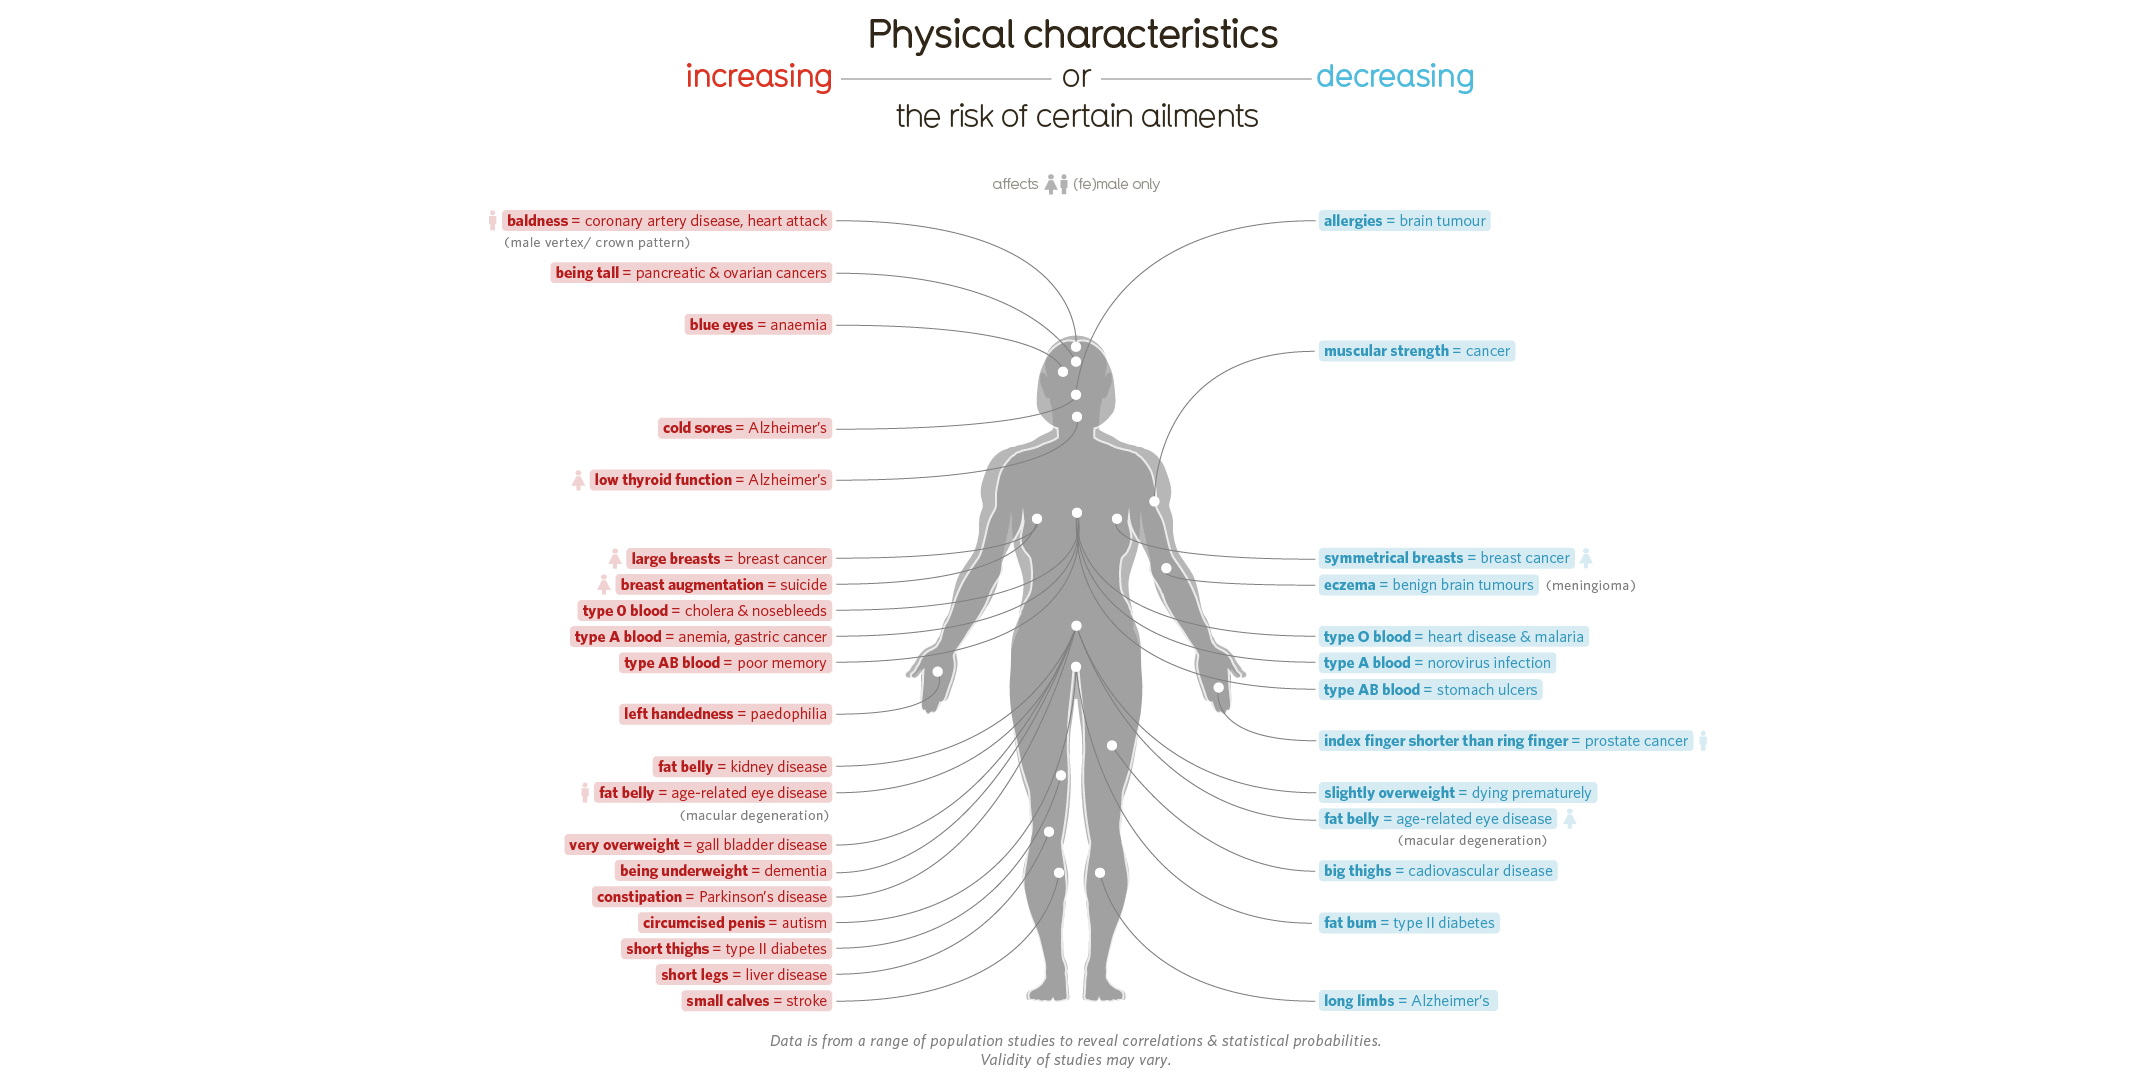 The Strange Correlations Between Your Body Parts and Medical Conditions